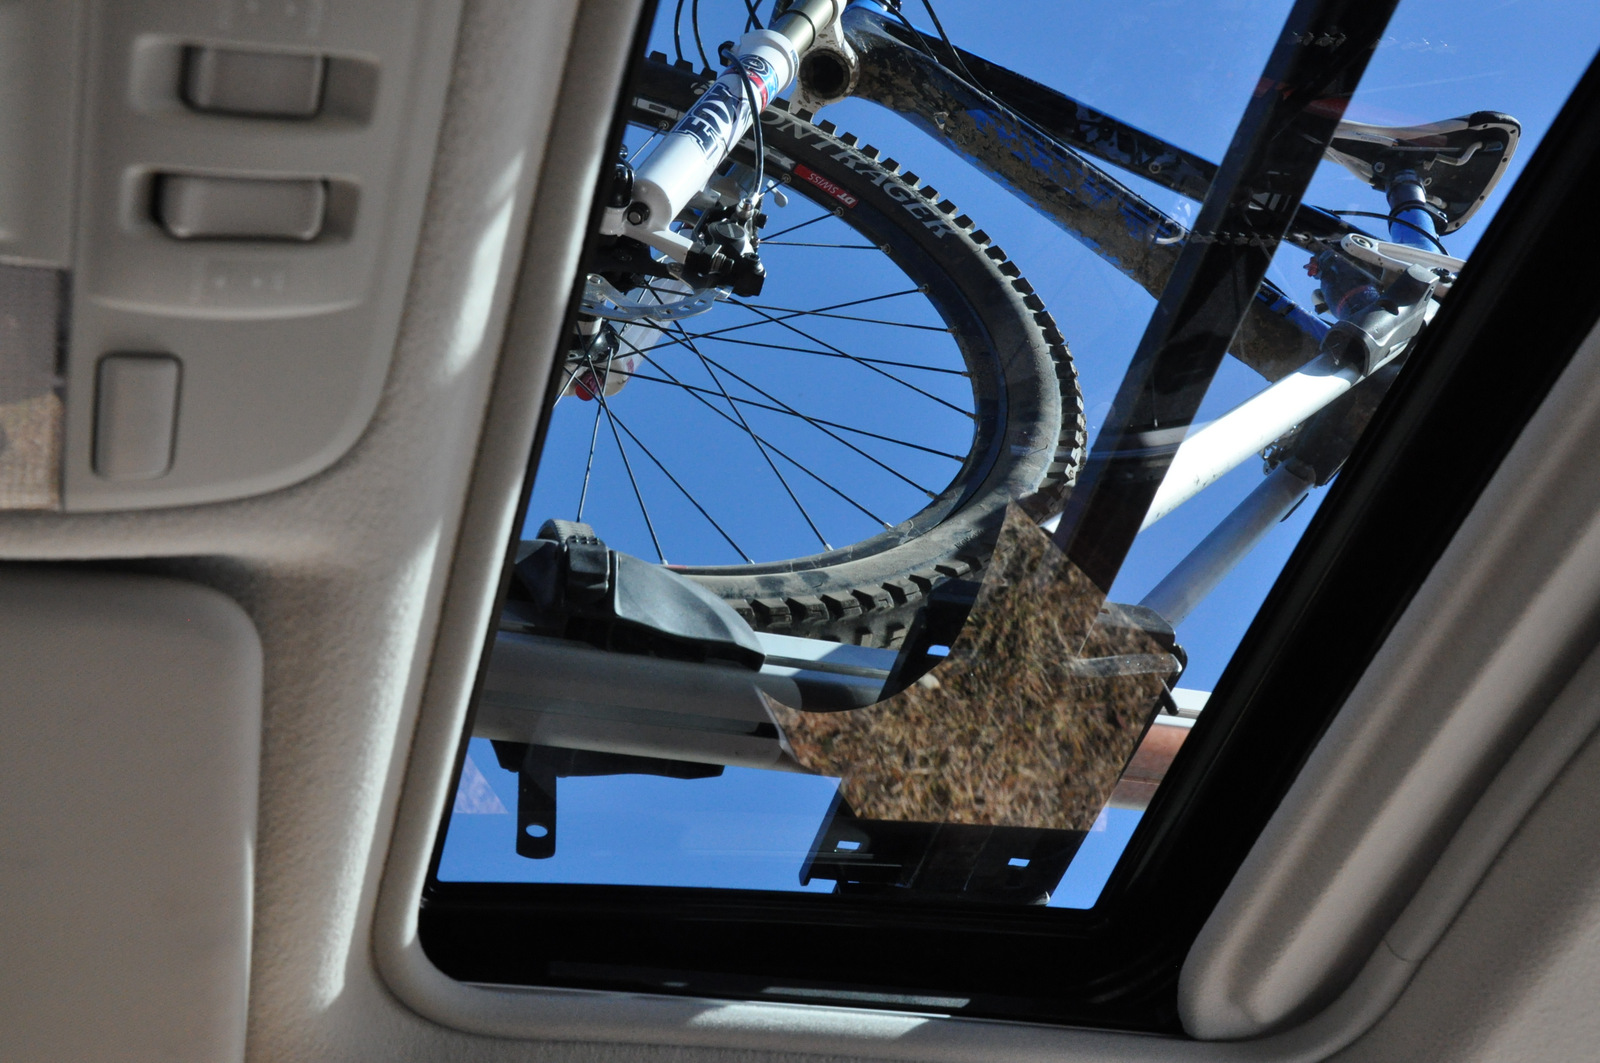 Subaru XV Crosstrek sunroof with bikes